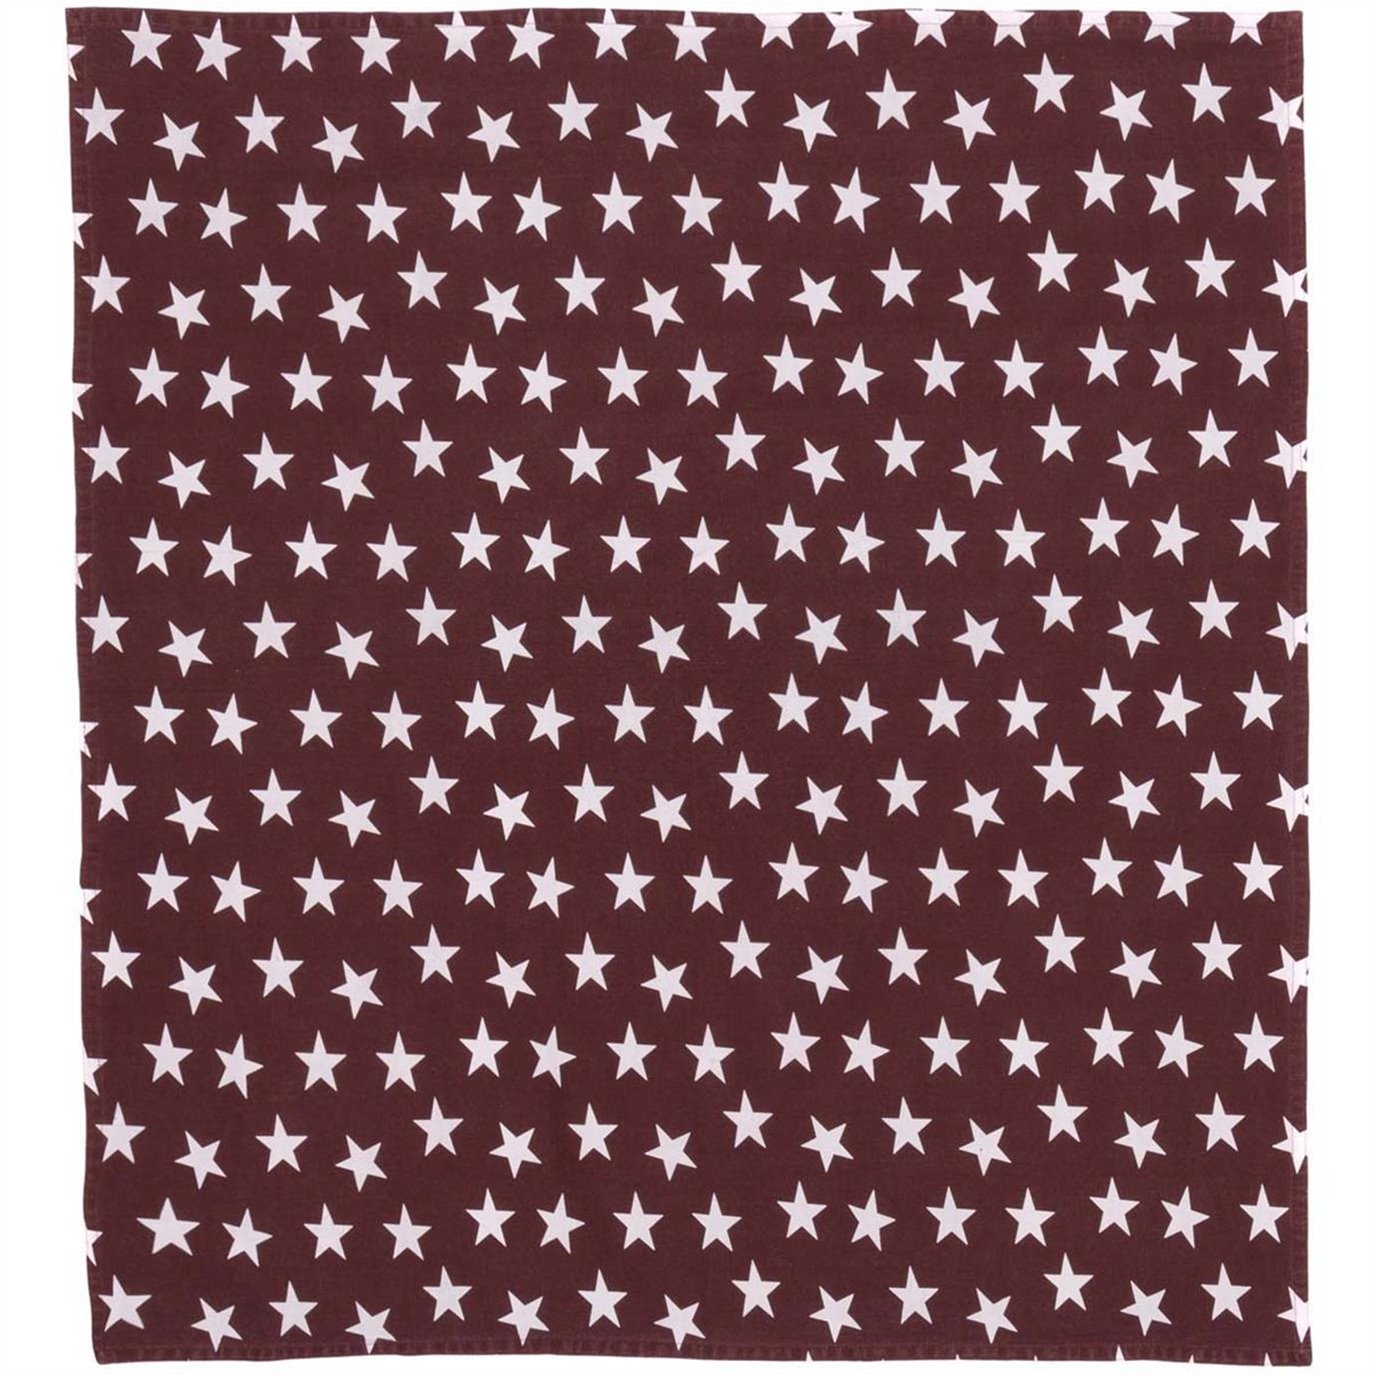 Multi Star Red Table Topper 40x40